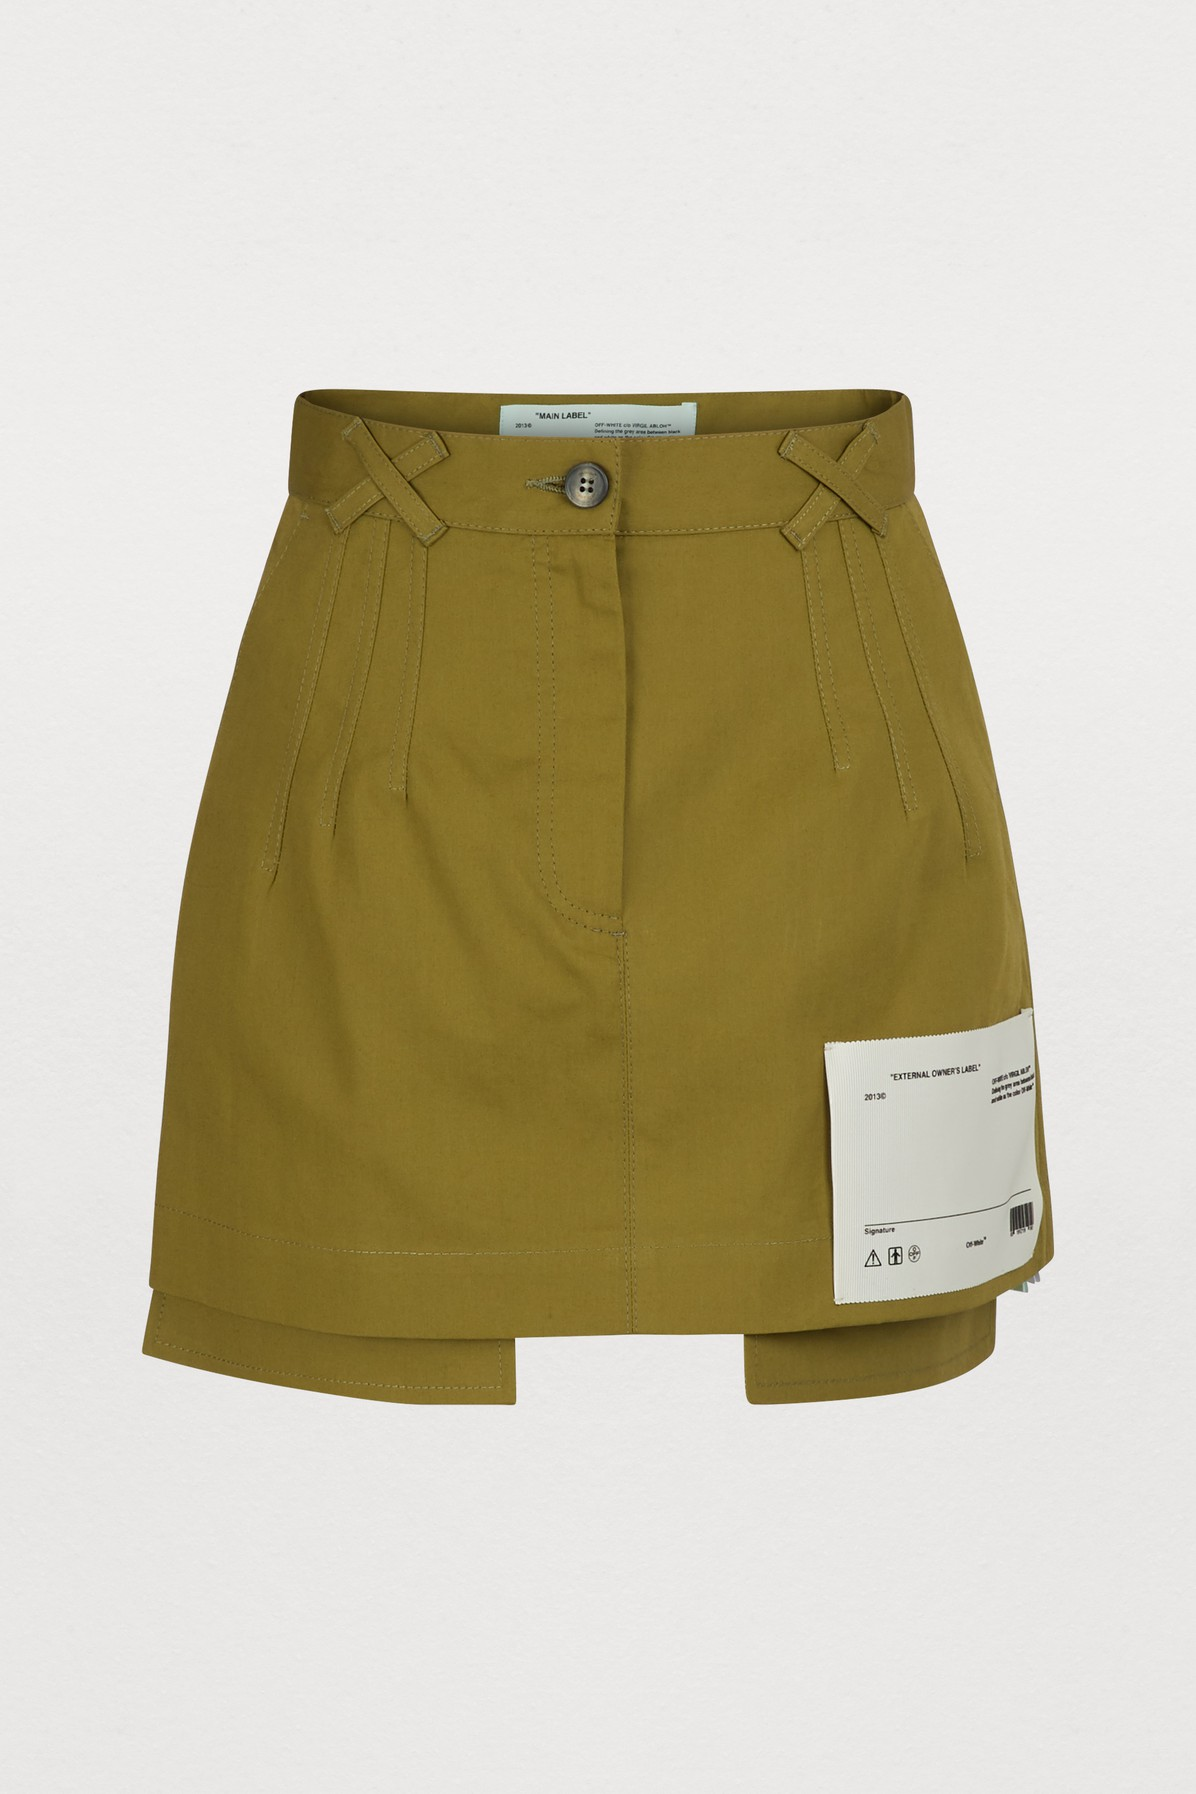 d84f1766d Shop Off-White Skirts on sale at the Marie Claire Edit